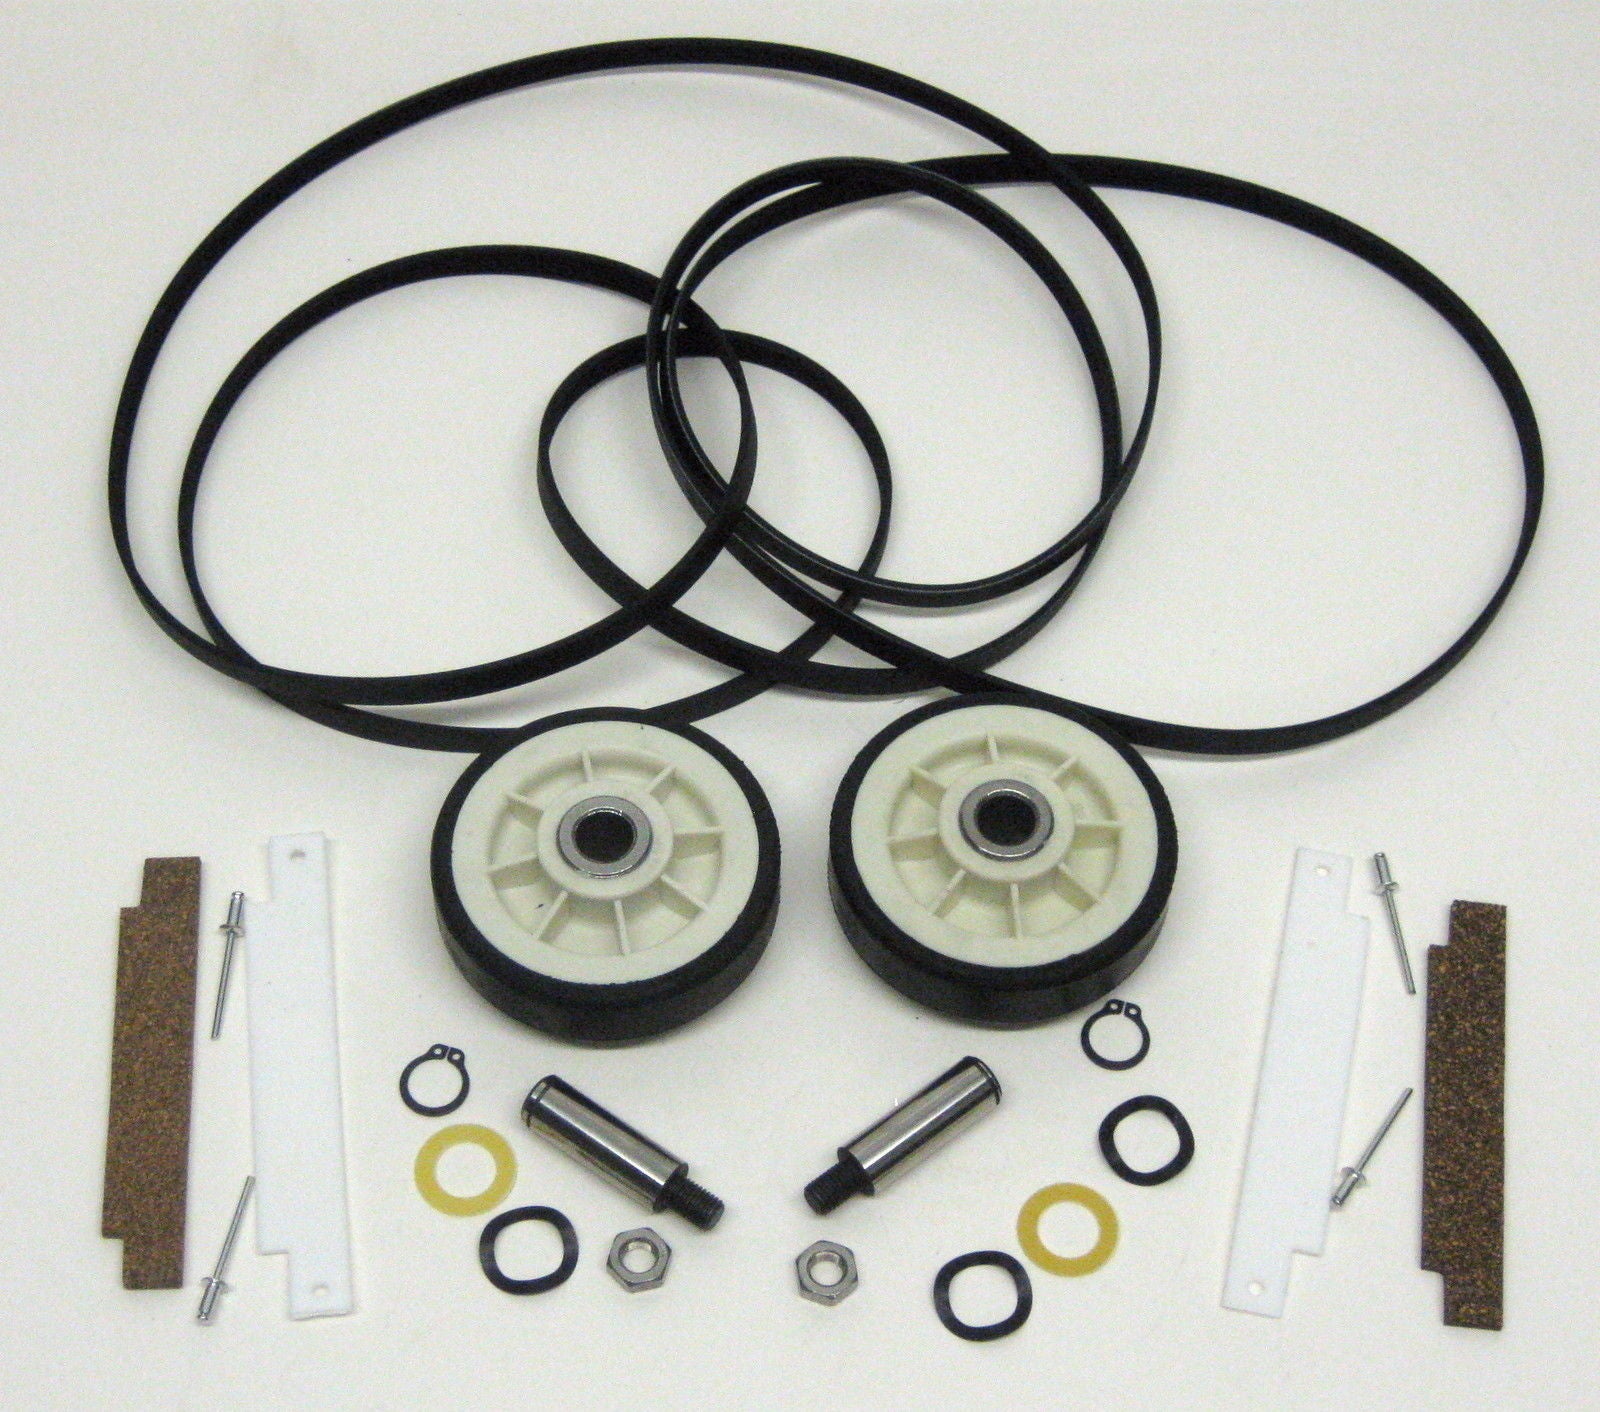 Maintenance Kit for Maytag MDG11PDEGL Dryer